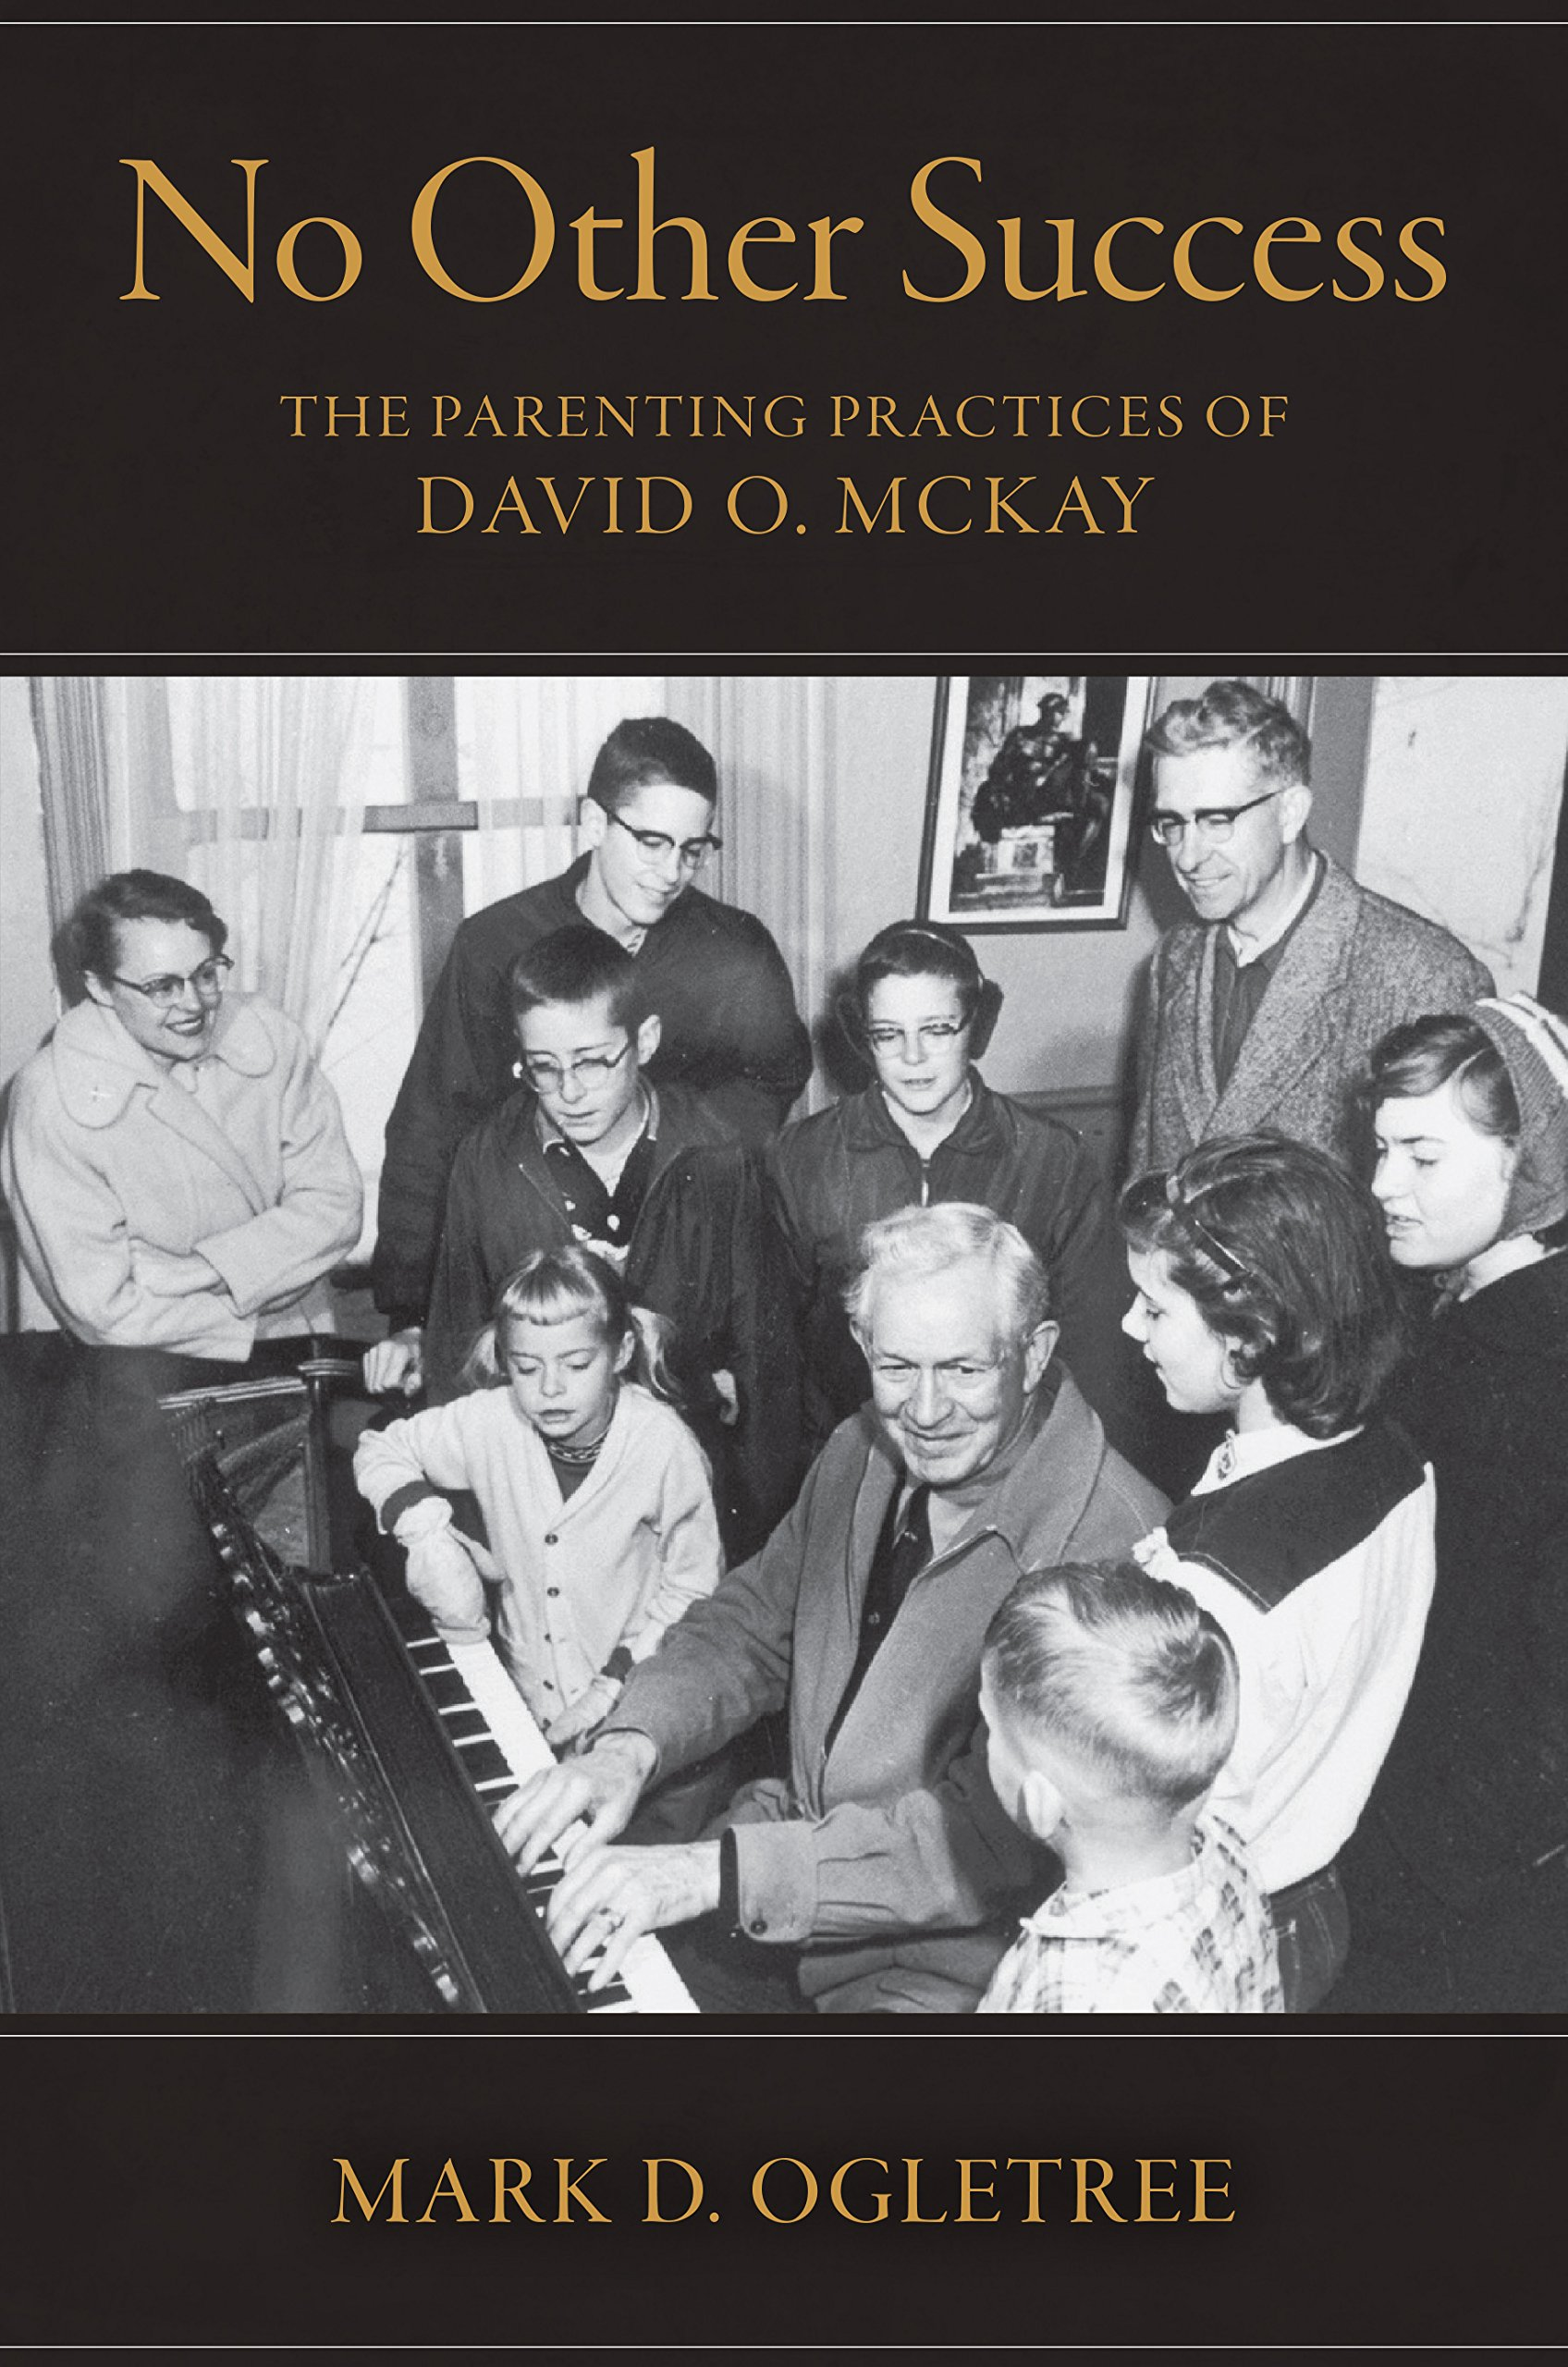 Download No Other Succuss: The Parenting Practices of David O. McKay PDF